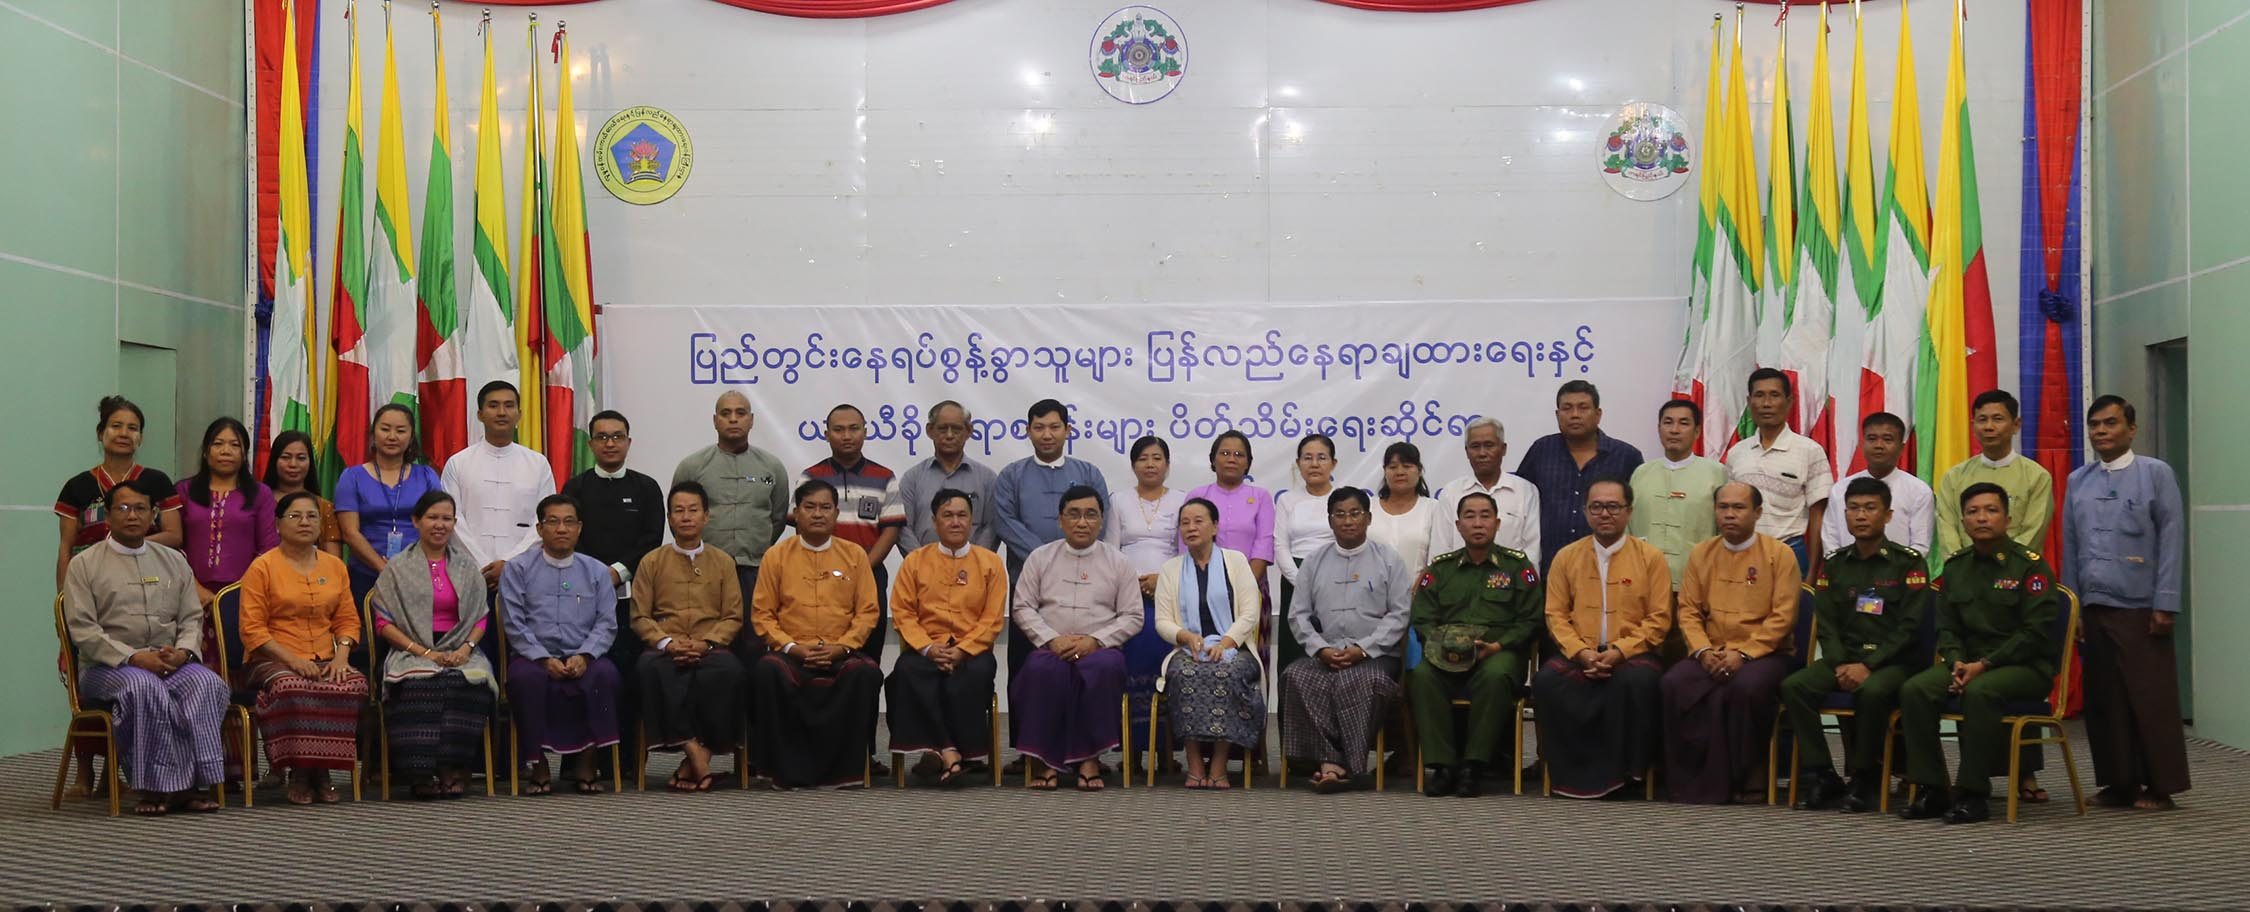 Union Minister Dr Win Myat Aye poses for a documentary photo with attendees at the meeting for explaining the National Master Strategic Plan for Resettling IDPs and Closing Temporary Camps held in Hpa-an, Kayin State, yesterday.Photo: MNA